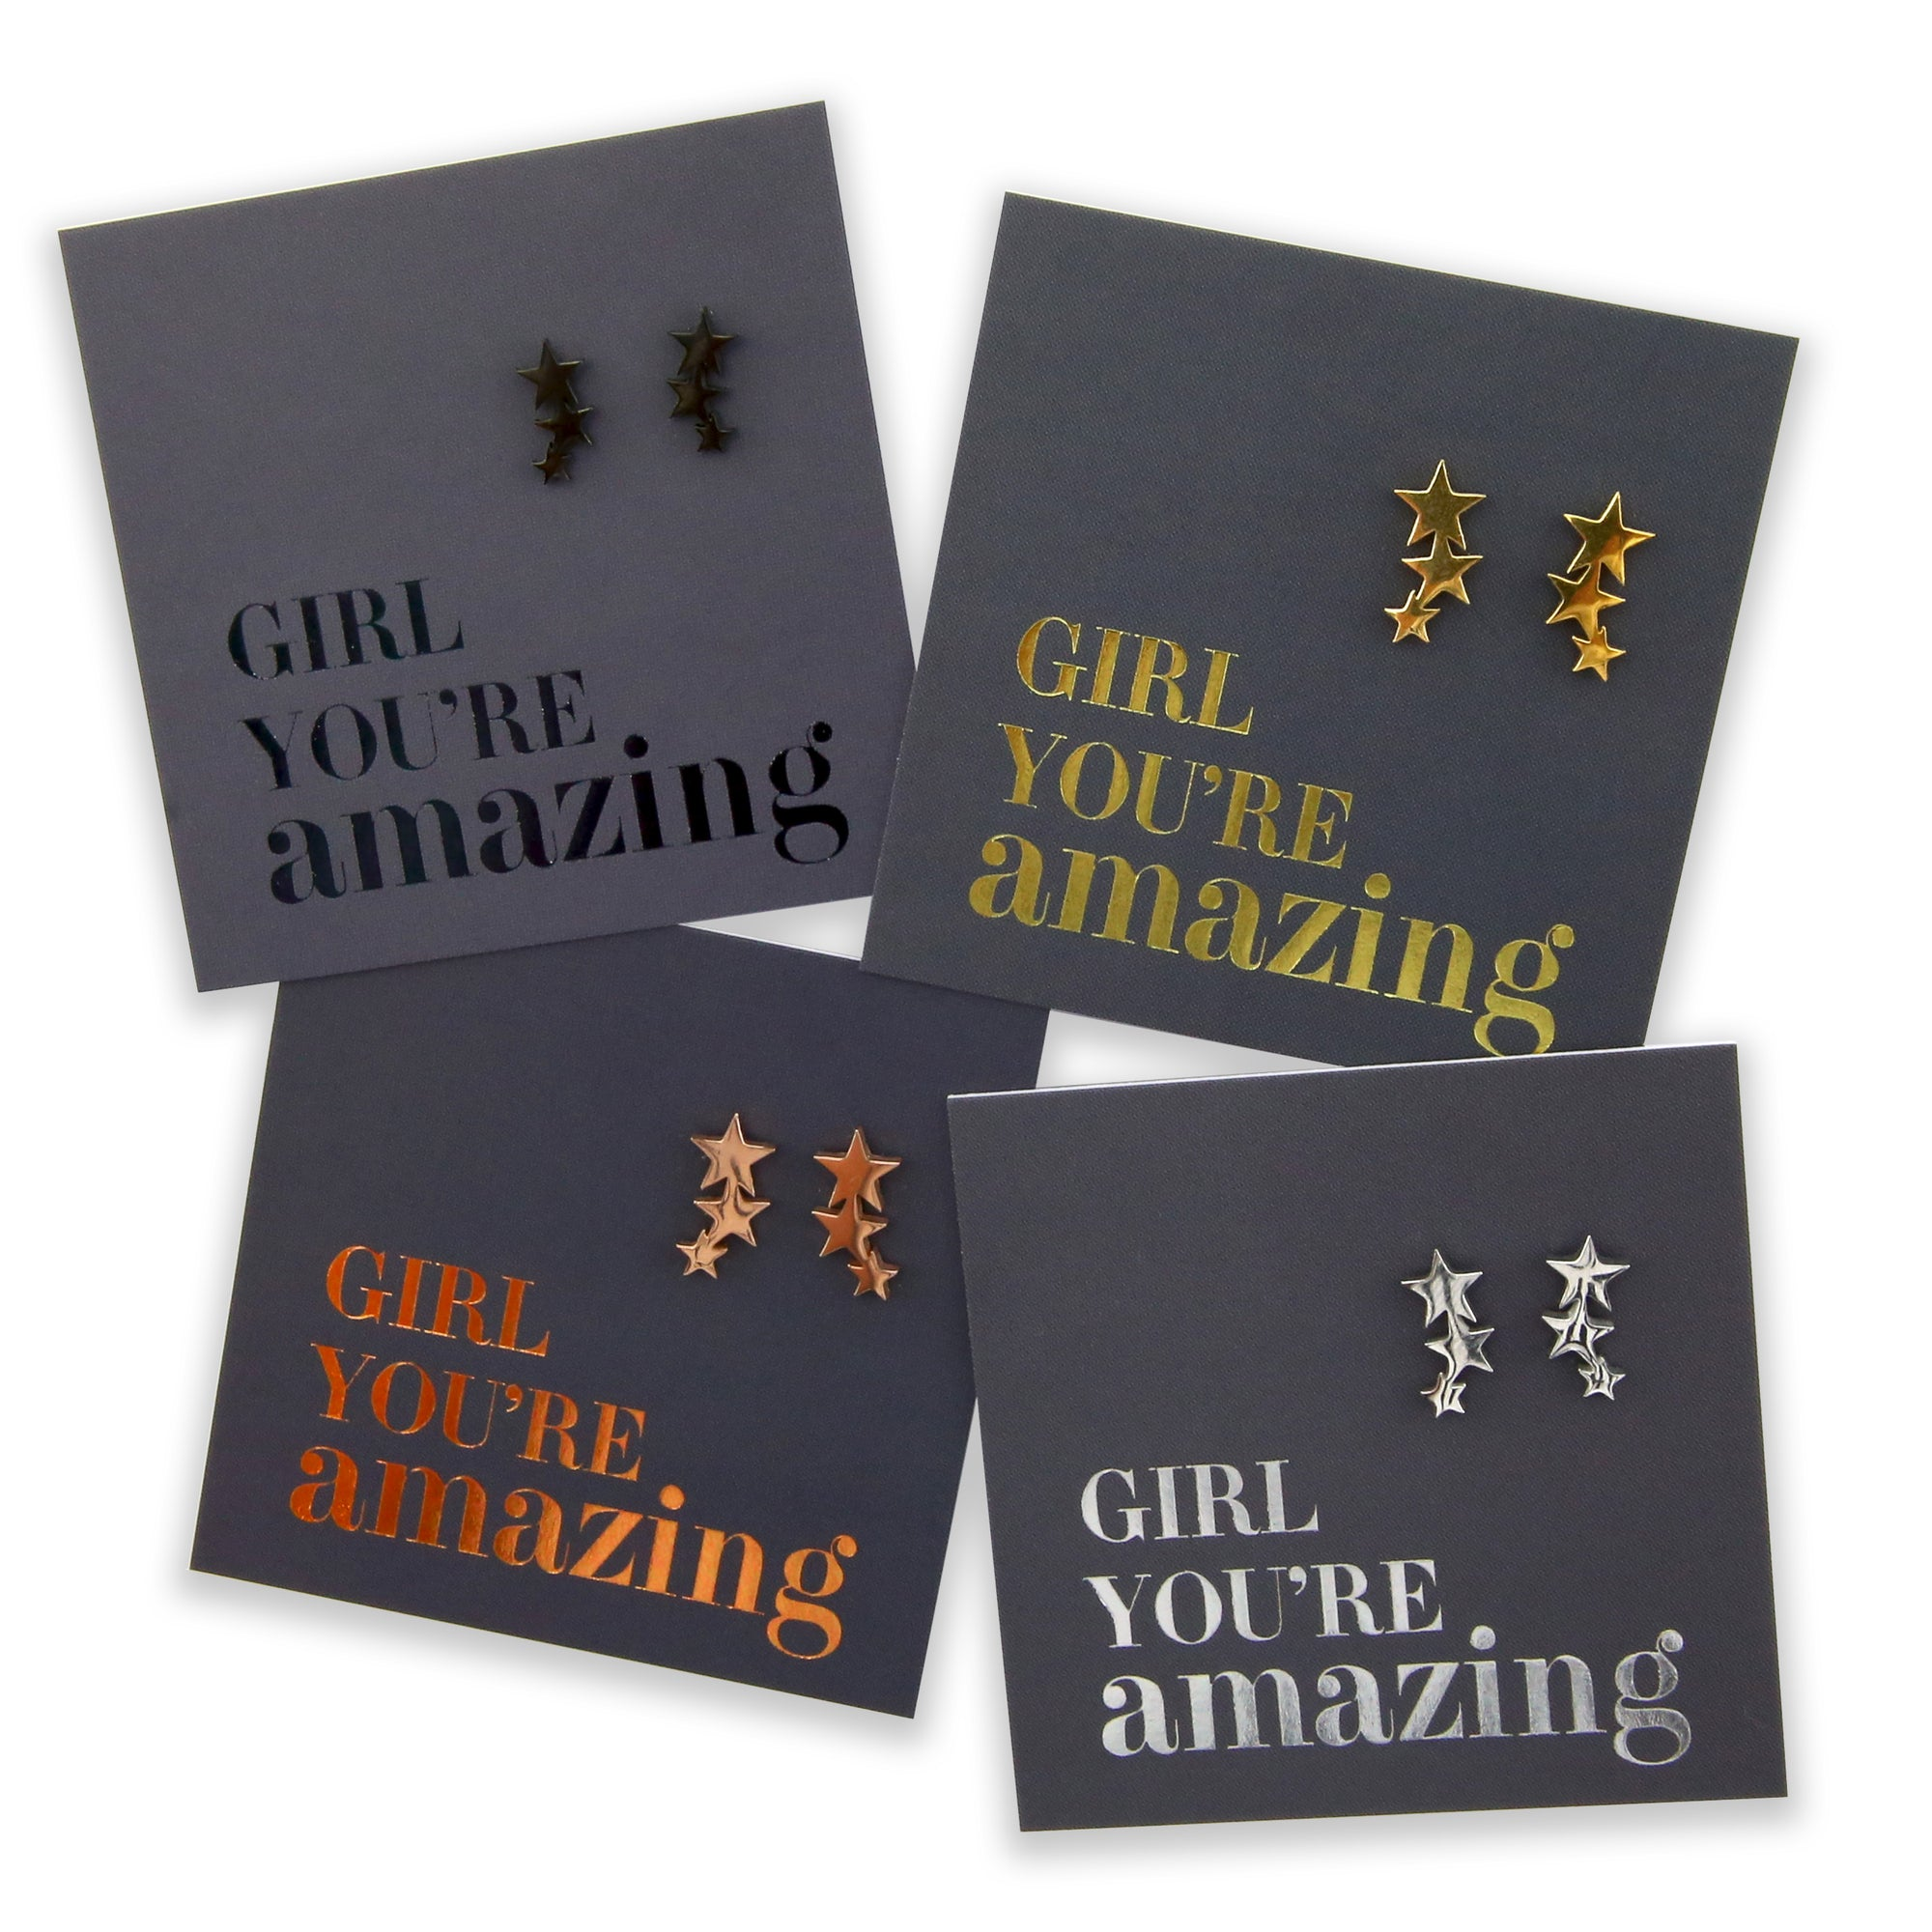 Stainless Steel Earring Studs - GIRL YOU'RE AMAZING - HANGING STARS